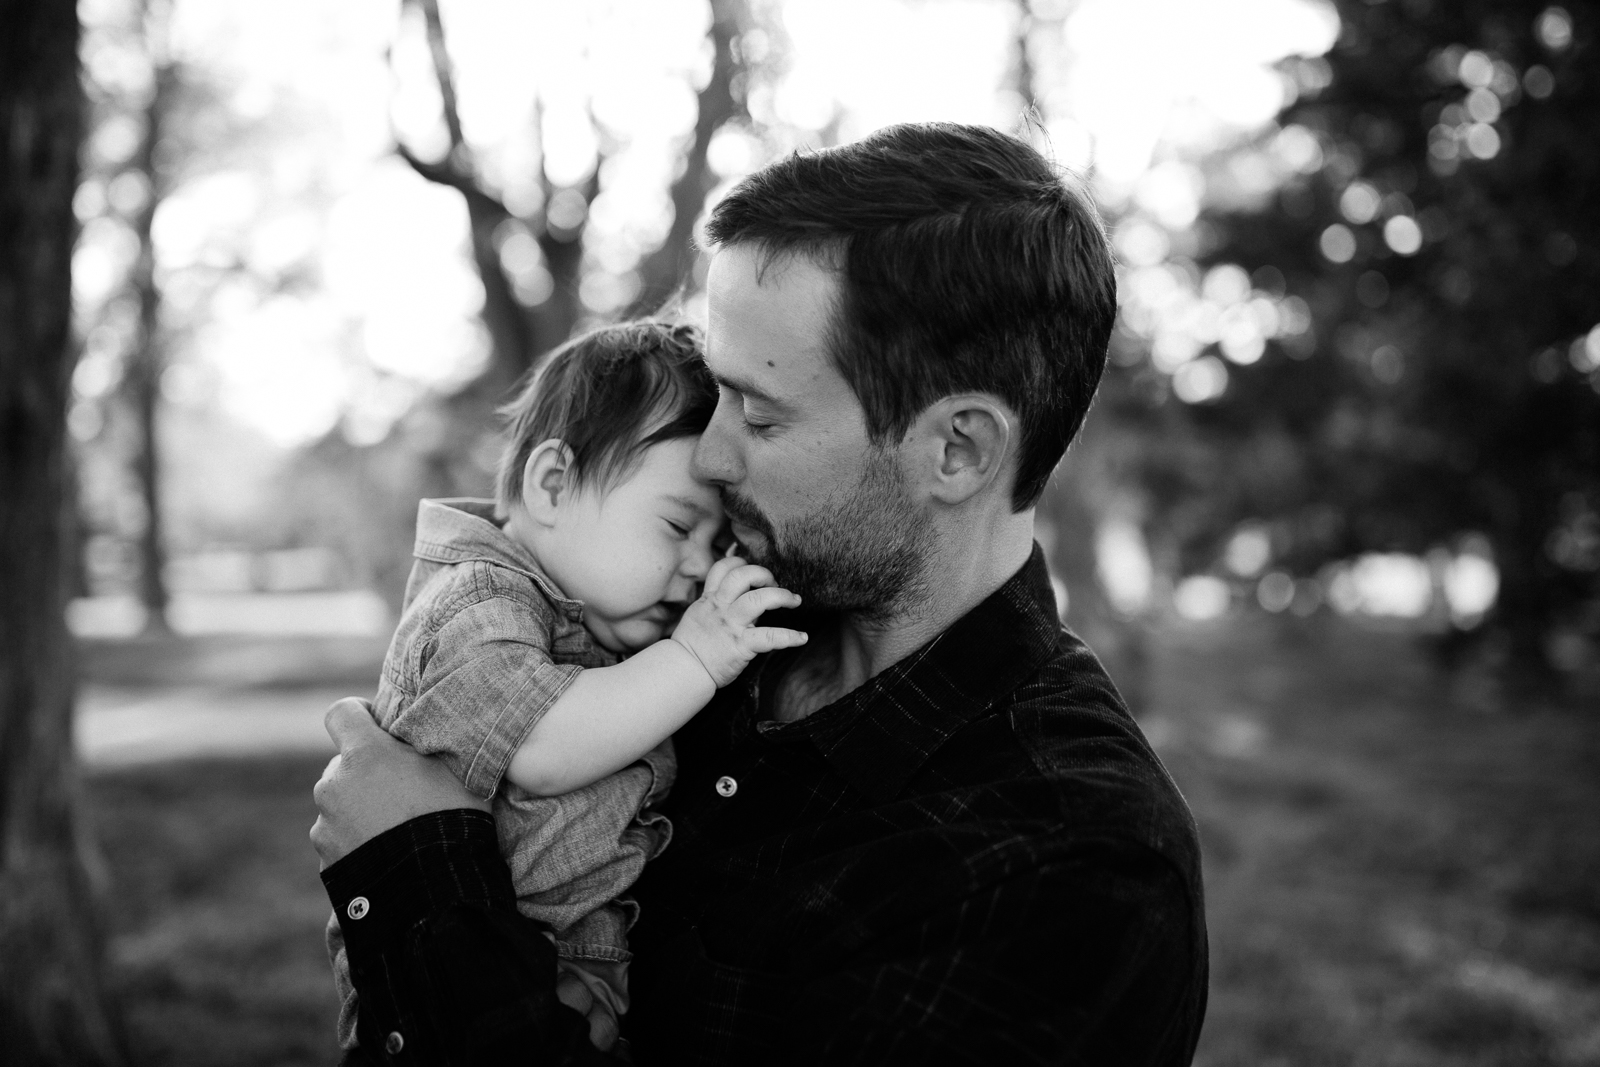 Black and white portrait of father cuddling his son, emotive portrait of father and son, Kansas City family photographer, Rebecca Clair Photography